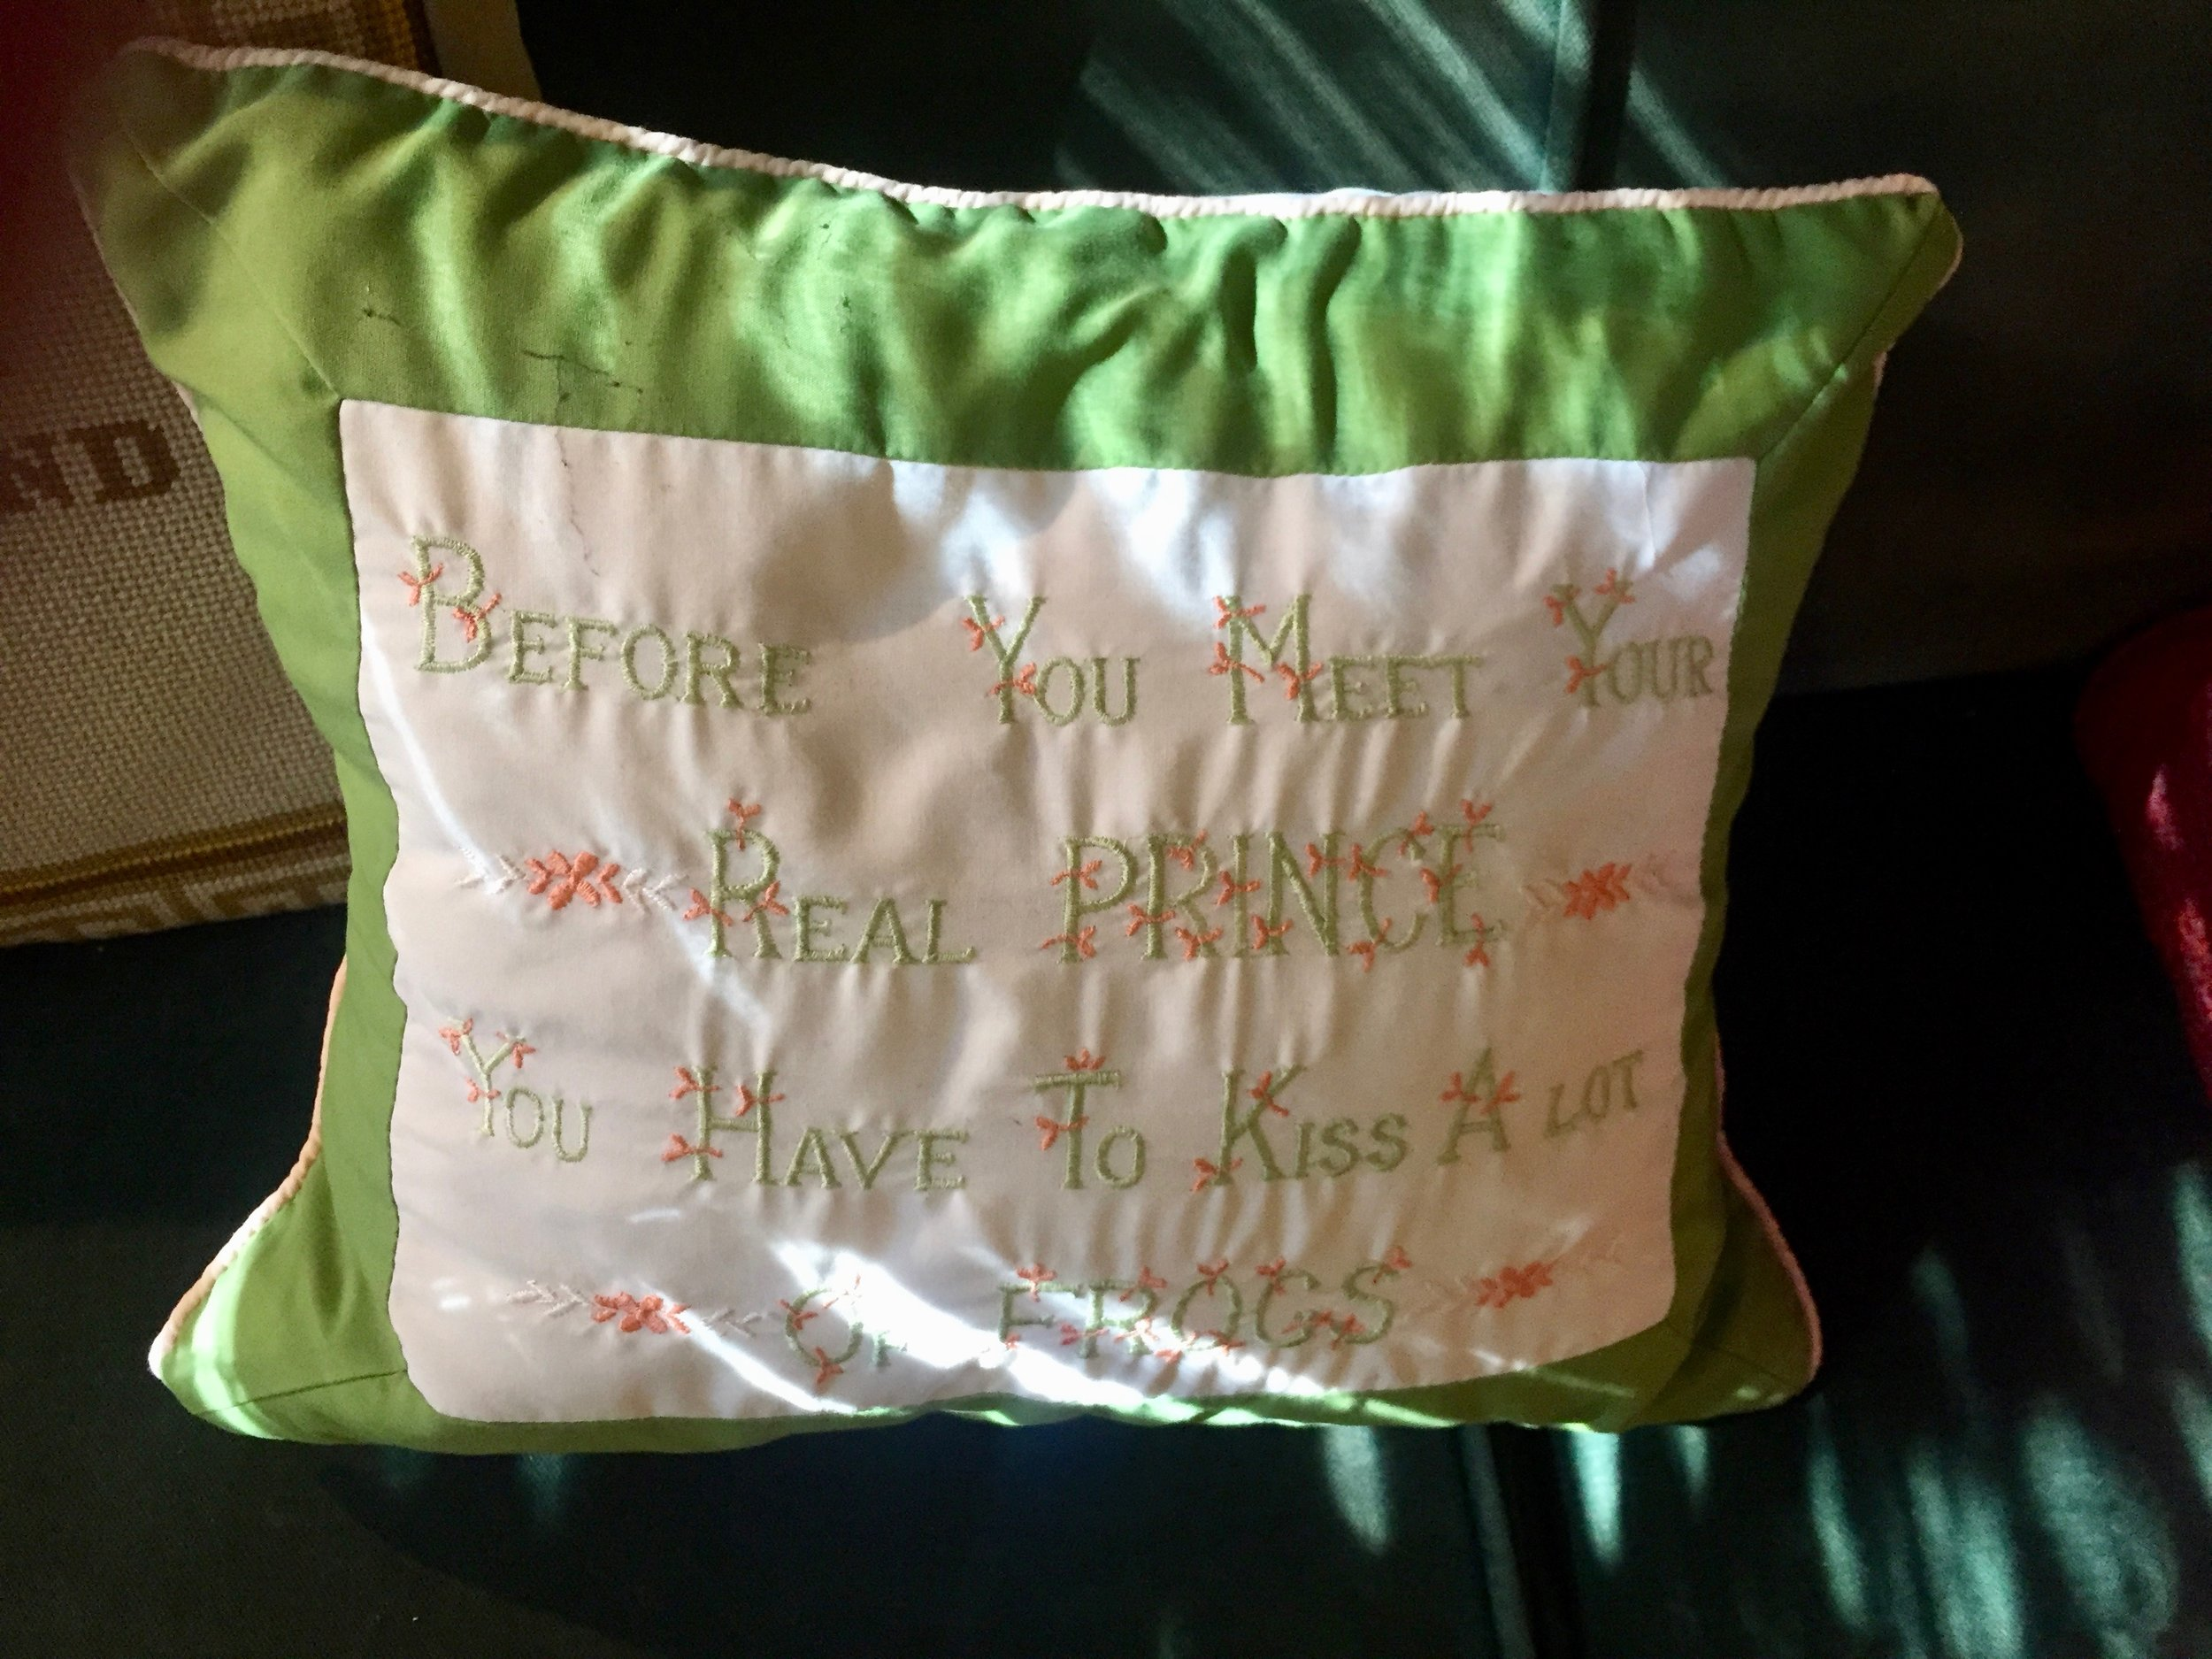 The embroidered pillow Phillip bought at Zsa Zsa Gabor's yard sale.